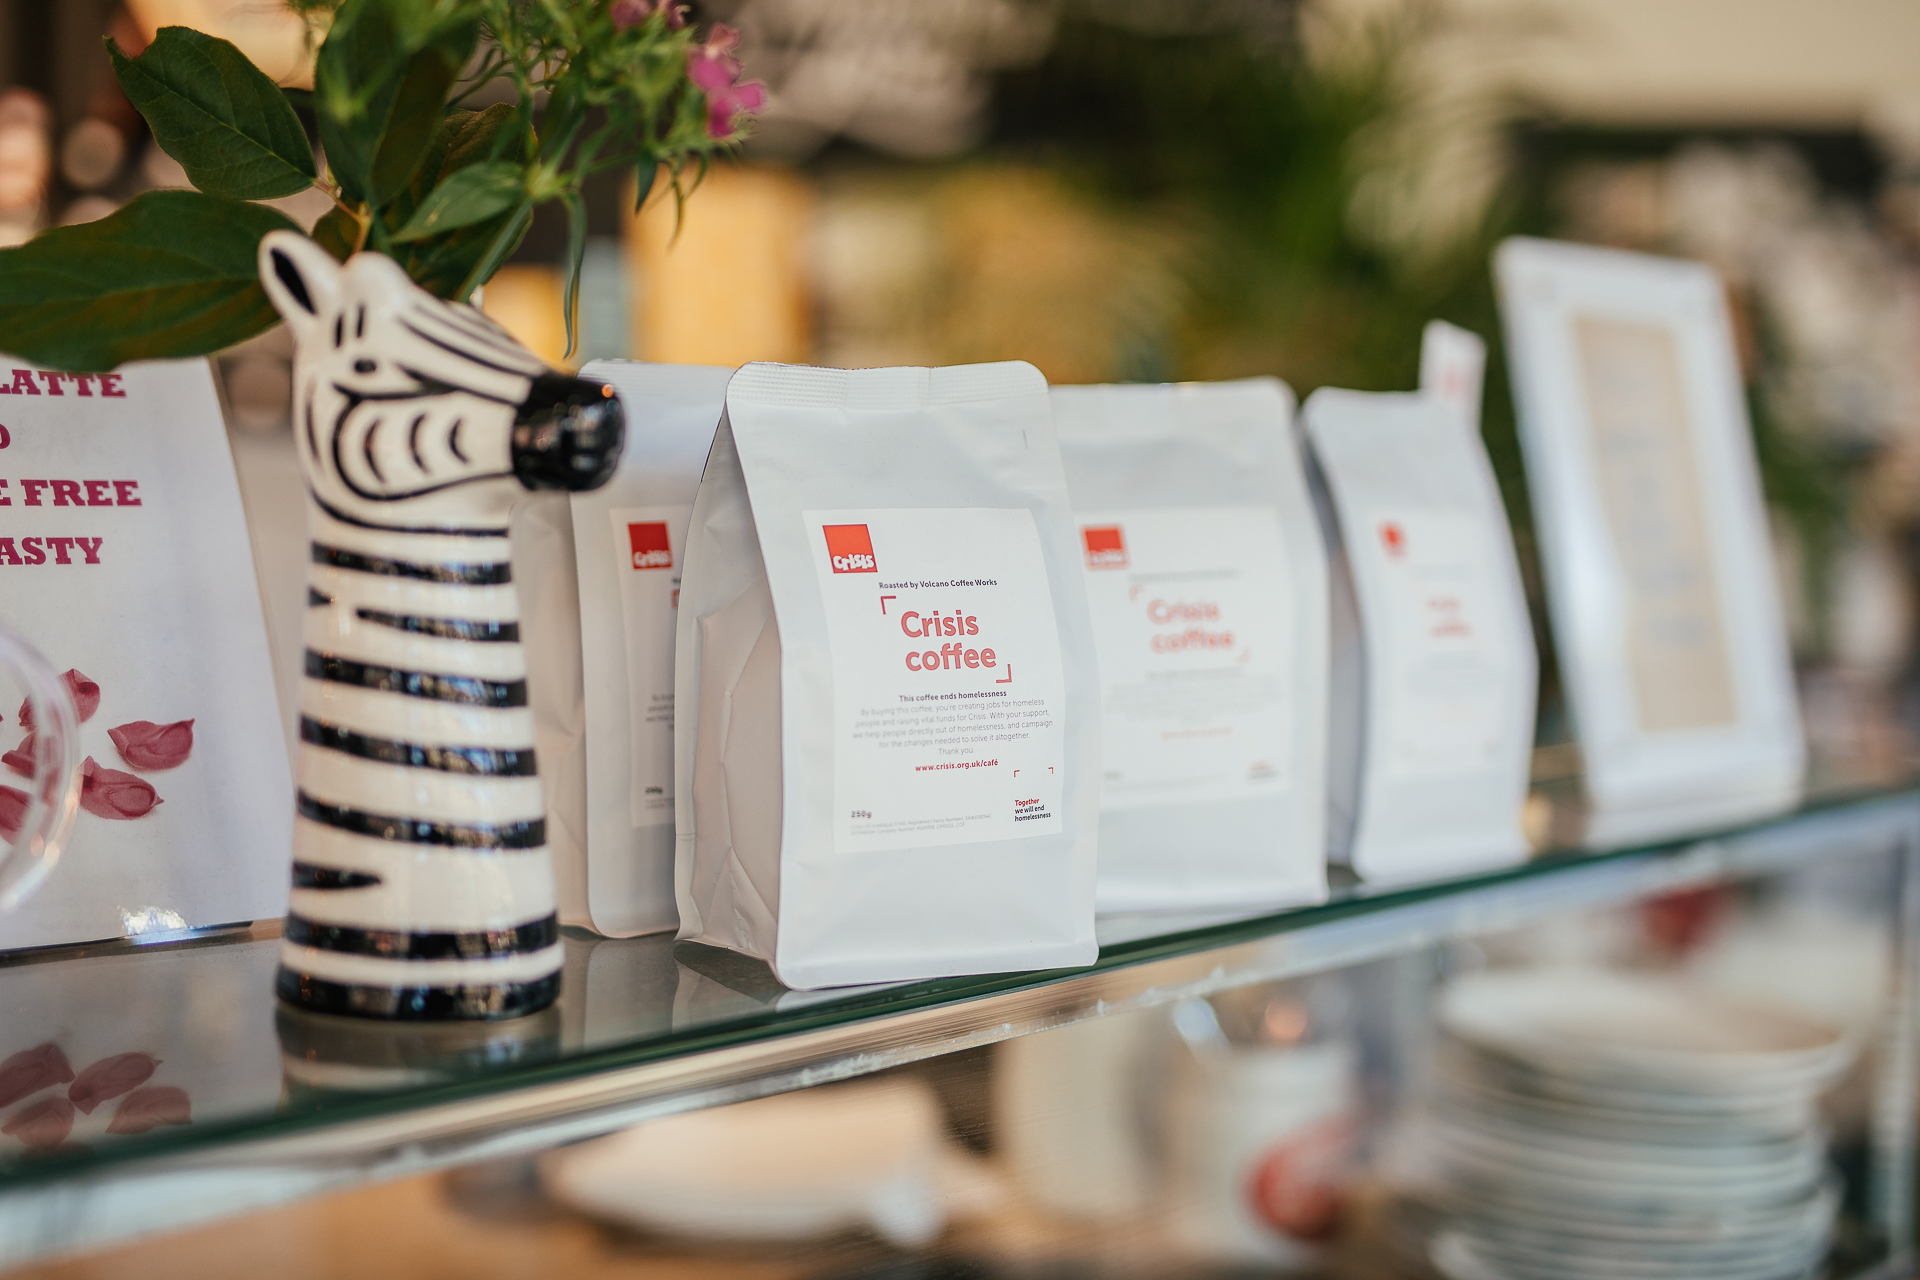 A photo of Crisis coffee sold at Crisis charity shop on Stroud Green Road.